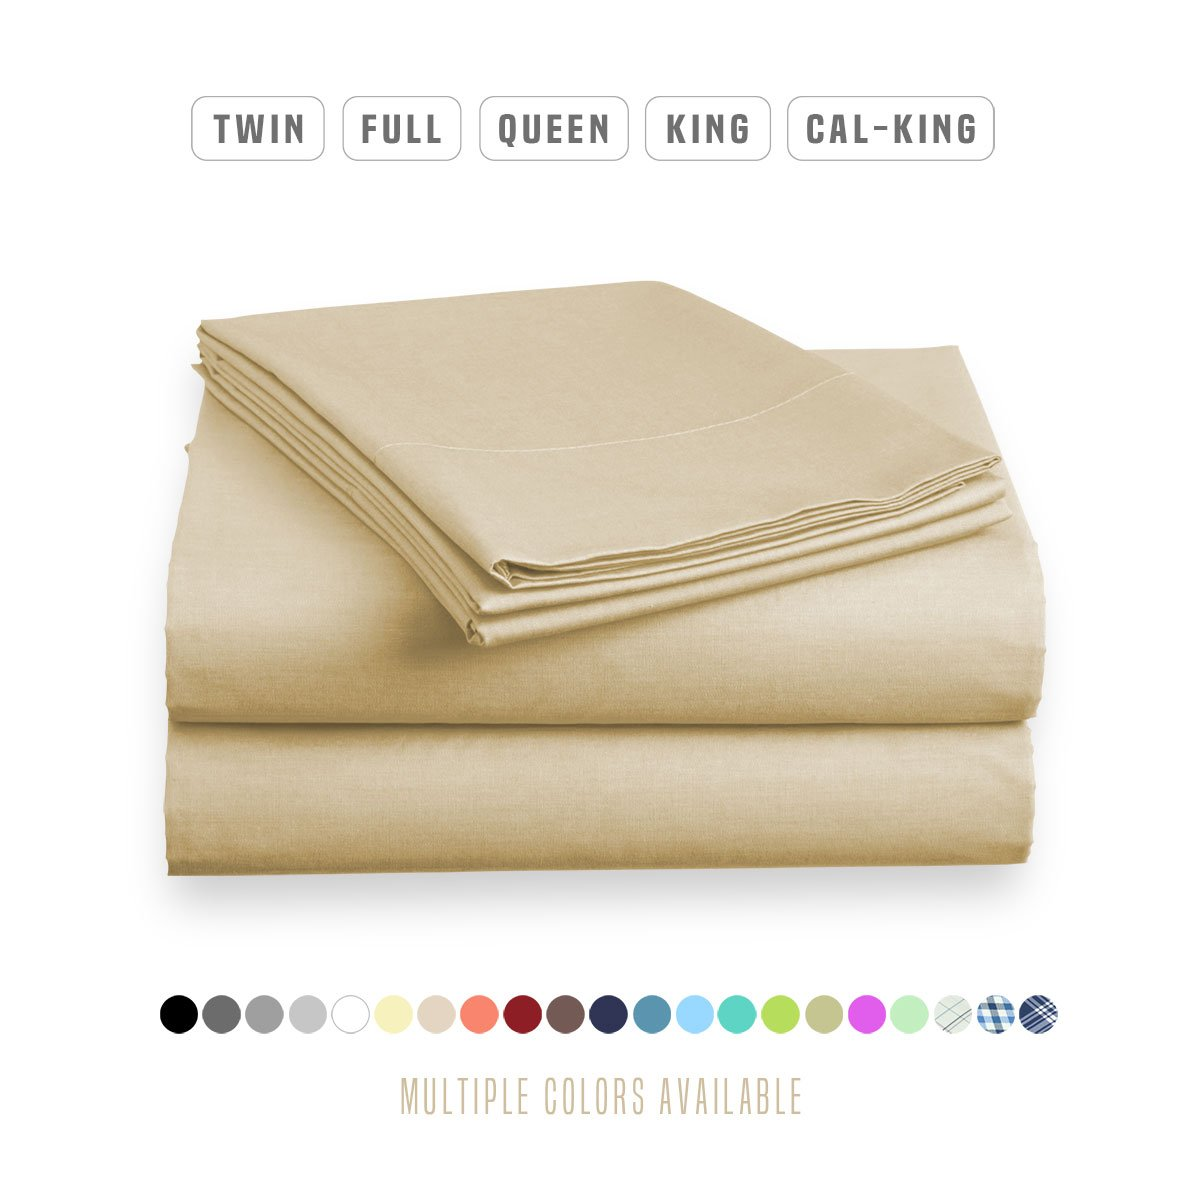 Luxe Bedding Bed Sheet Set - Brushed Microfiber 2000 Bedding Cal King, Sandy